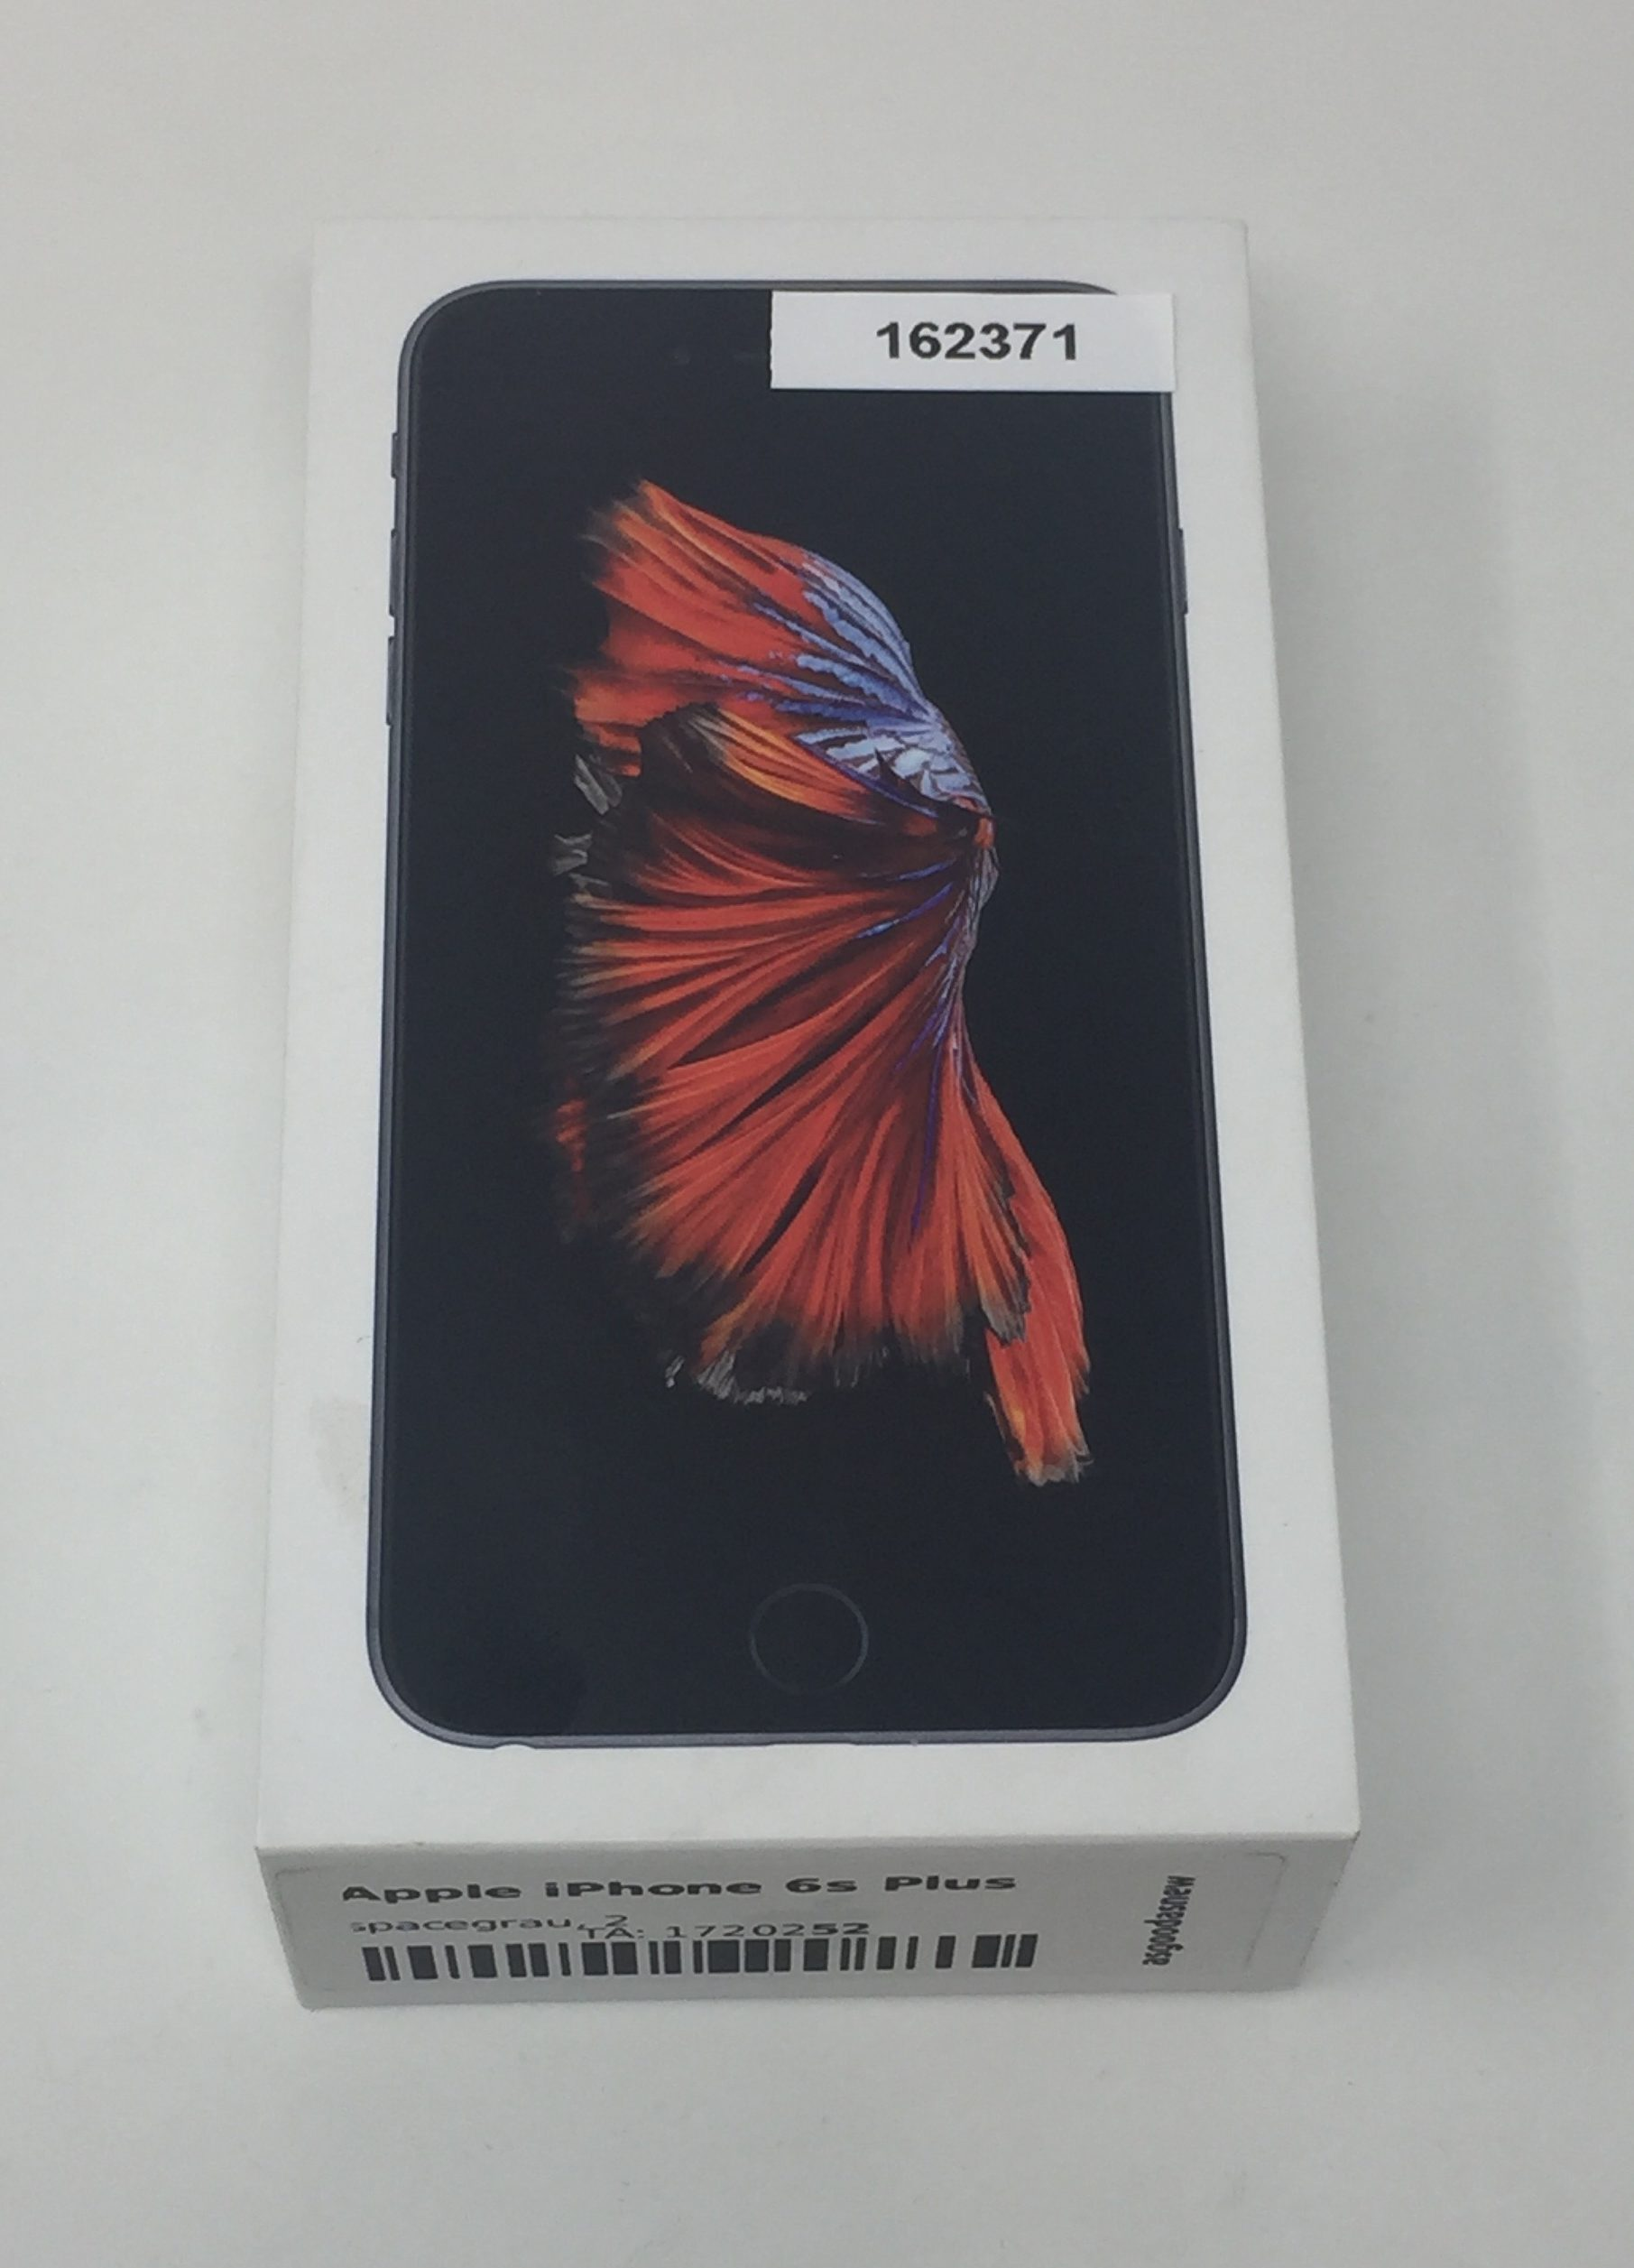 iPhone 6S Plus 16GB, 16 GB, SPACE GRAY, bild 9